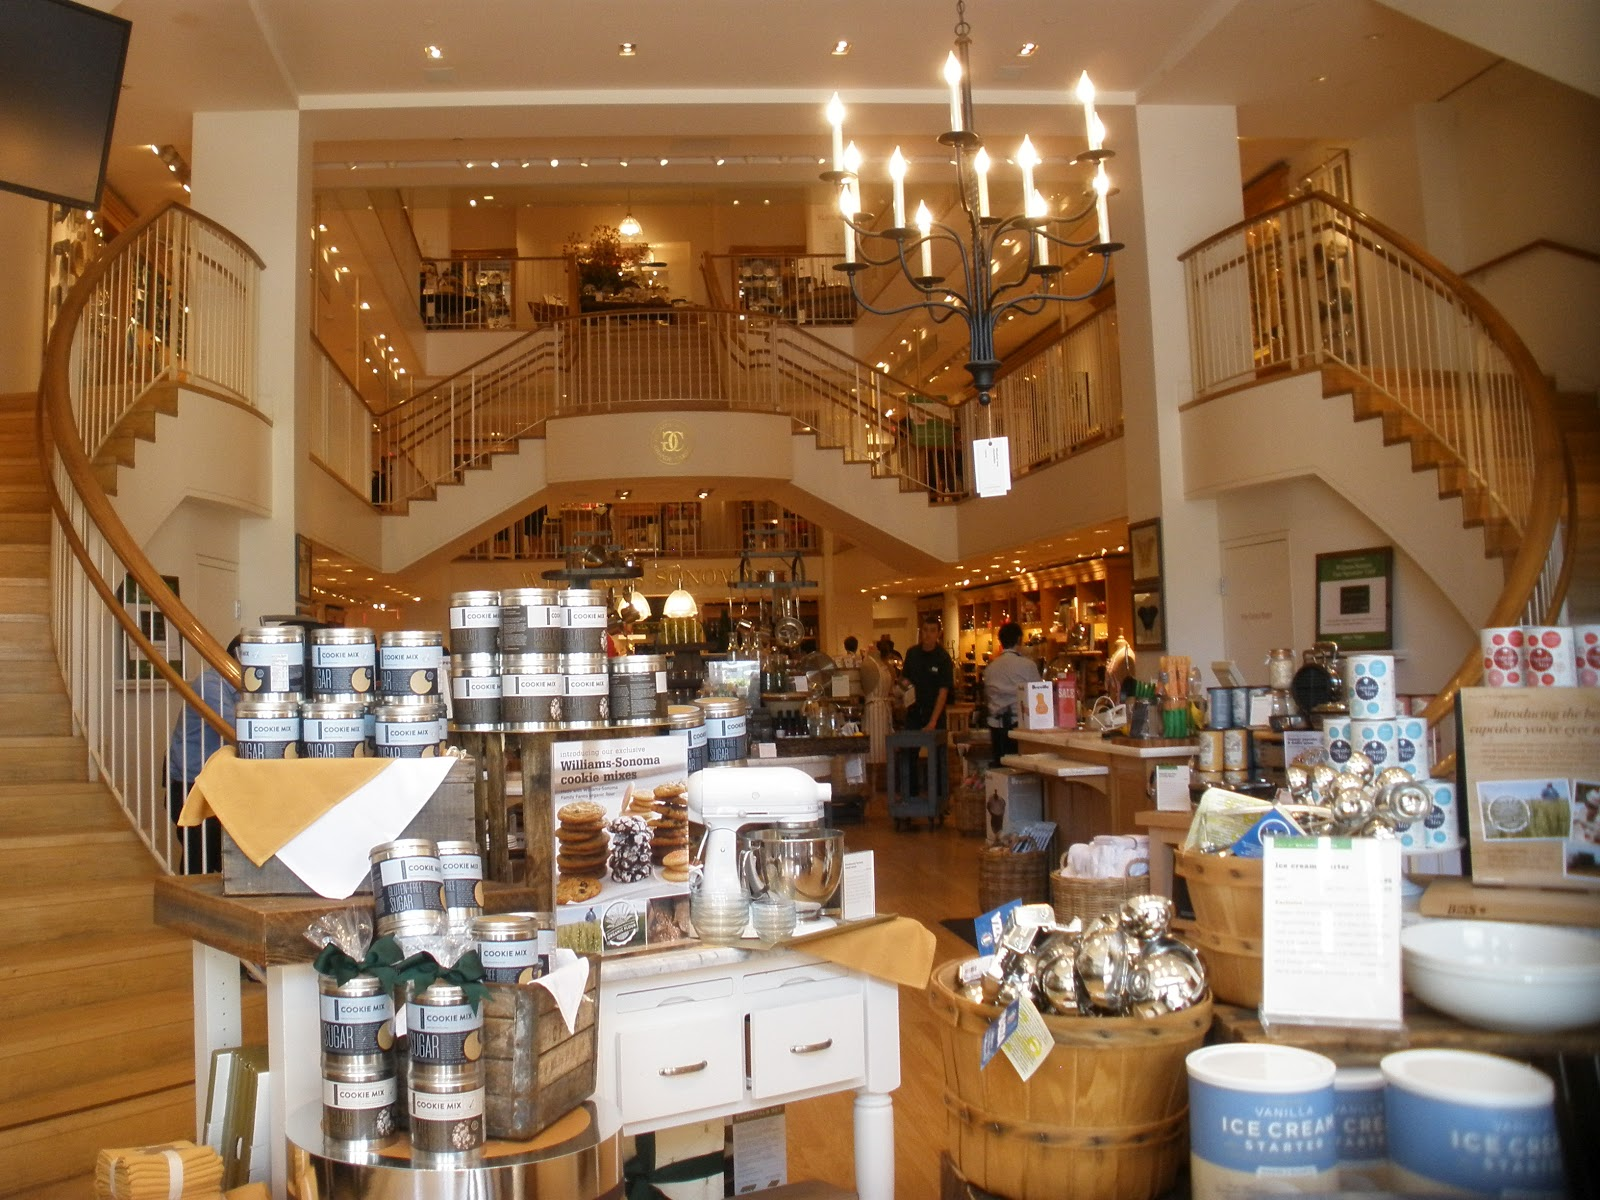 Williams-Sonoma Needs To Stop Making Excuses